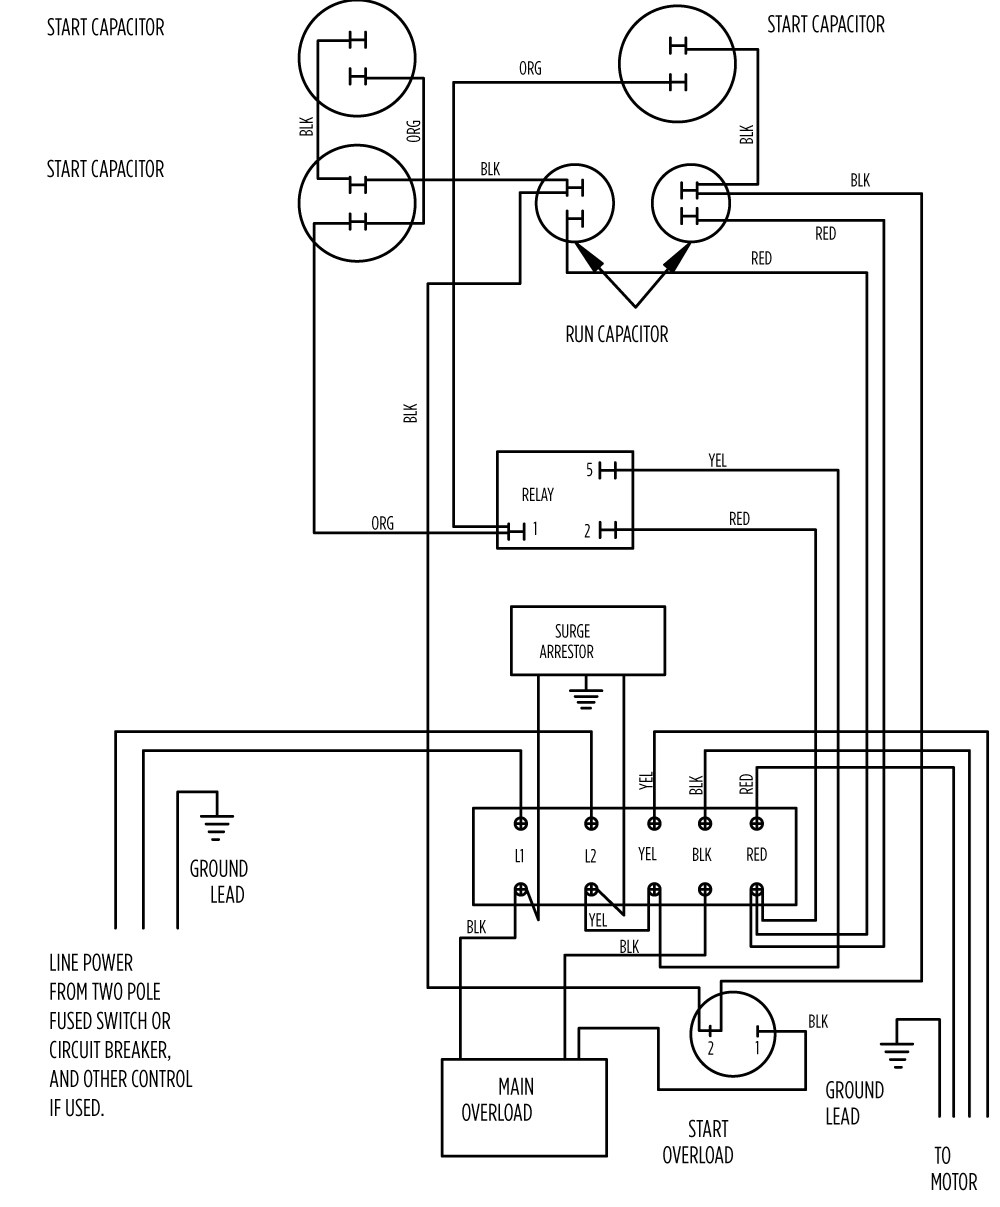 10 hp standard 282 202 9210 or 282 202 9230_aim gallery?format=jpg&quality=80 aim manual page 57 single phase motors and controls motor electric motor wiring diagram at bayanpartner.co